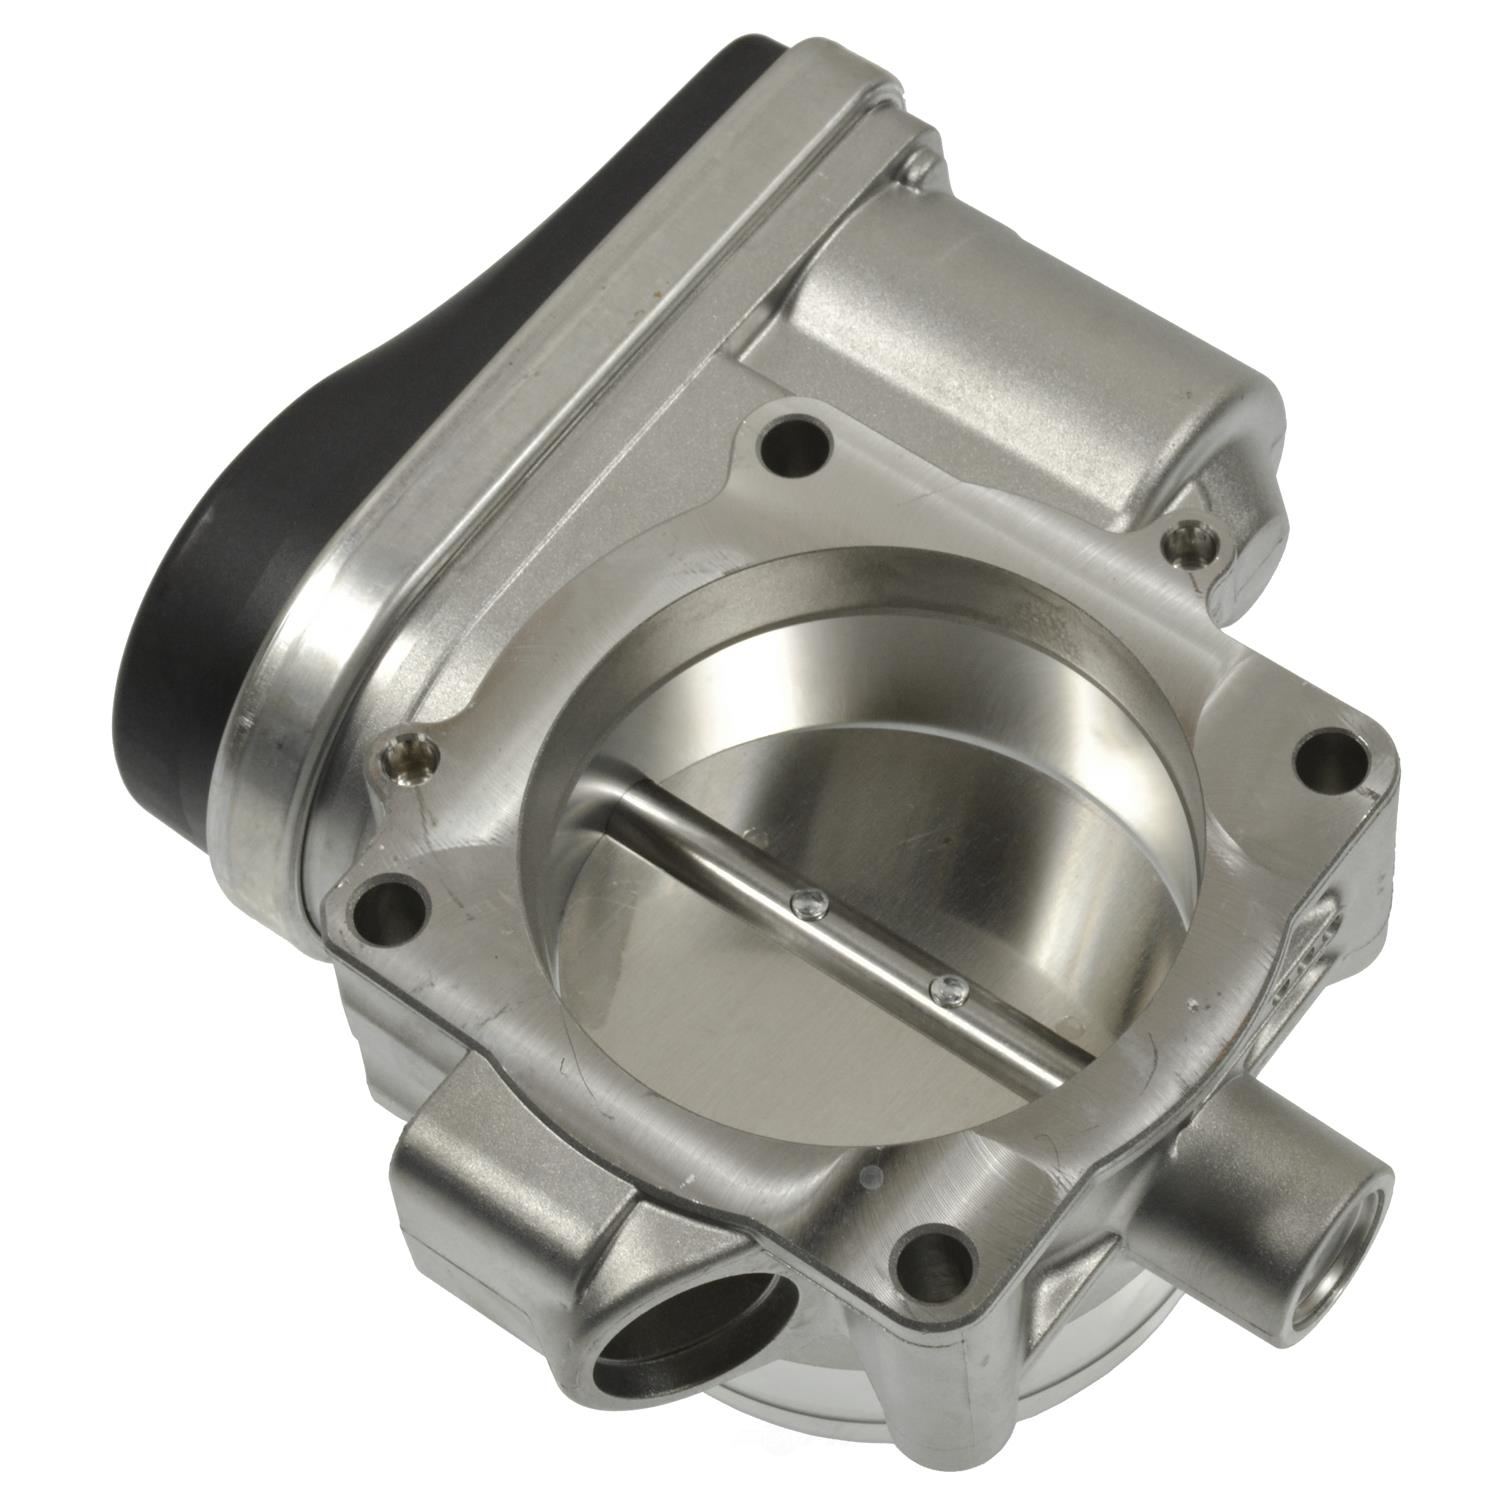 TECHSMART - Fuel Injection Throttle Body Assembly - TCS S20077